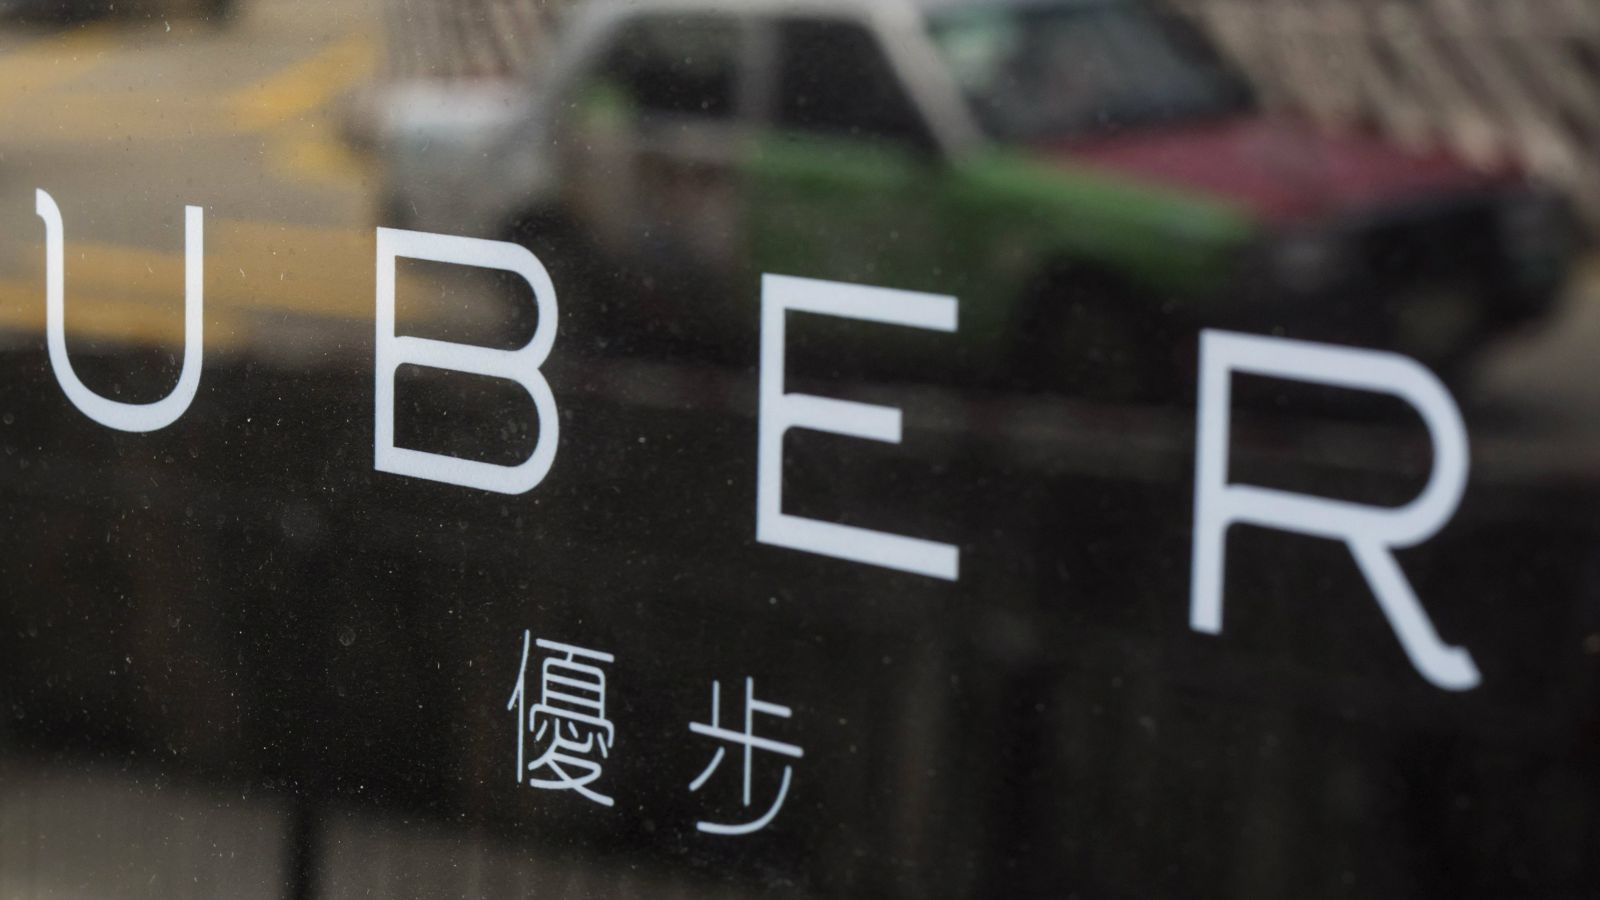 Uber losing 1 billion dollars a year in China